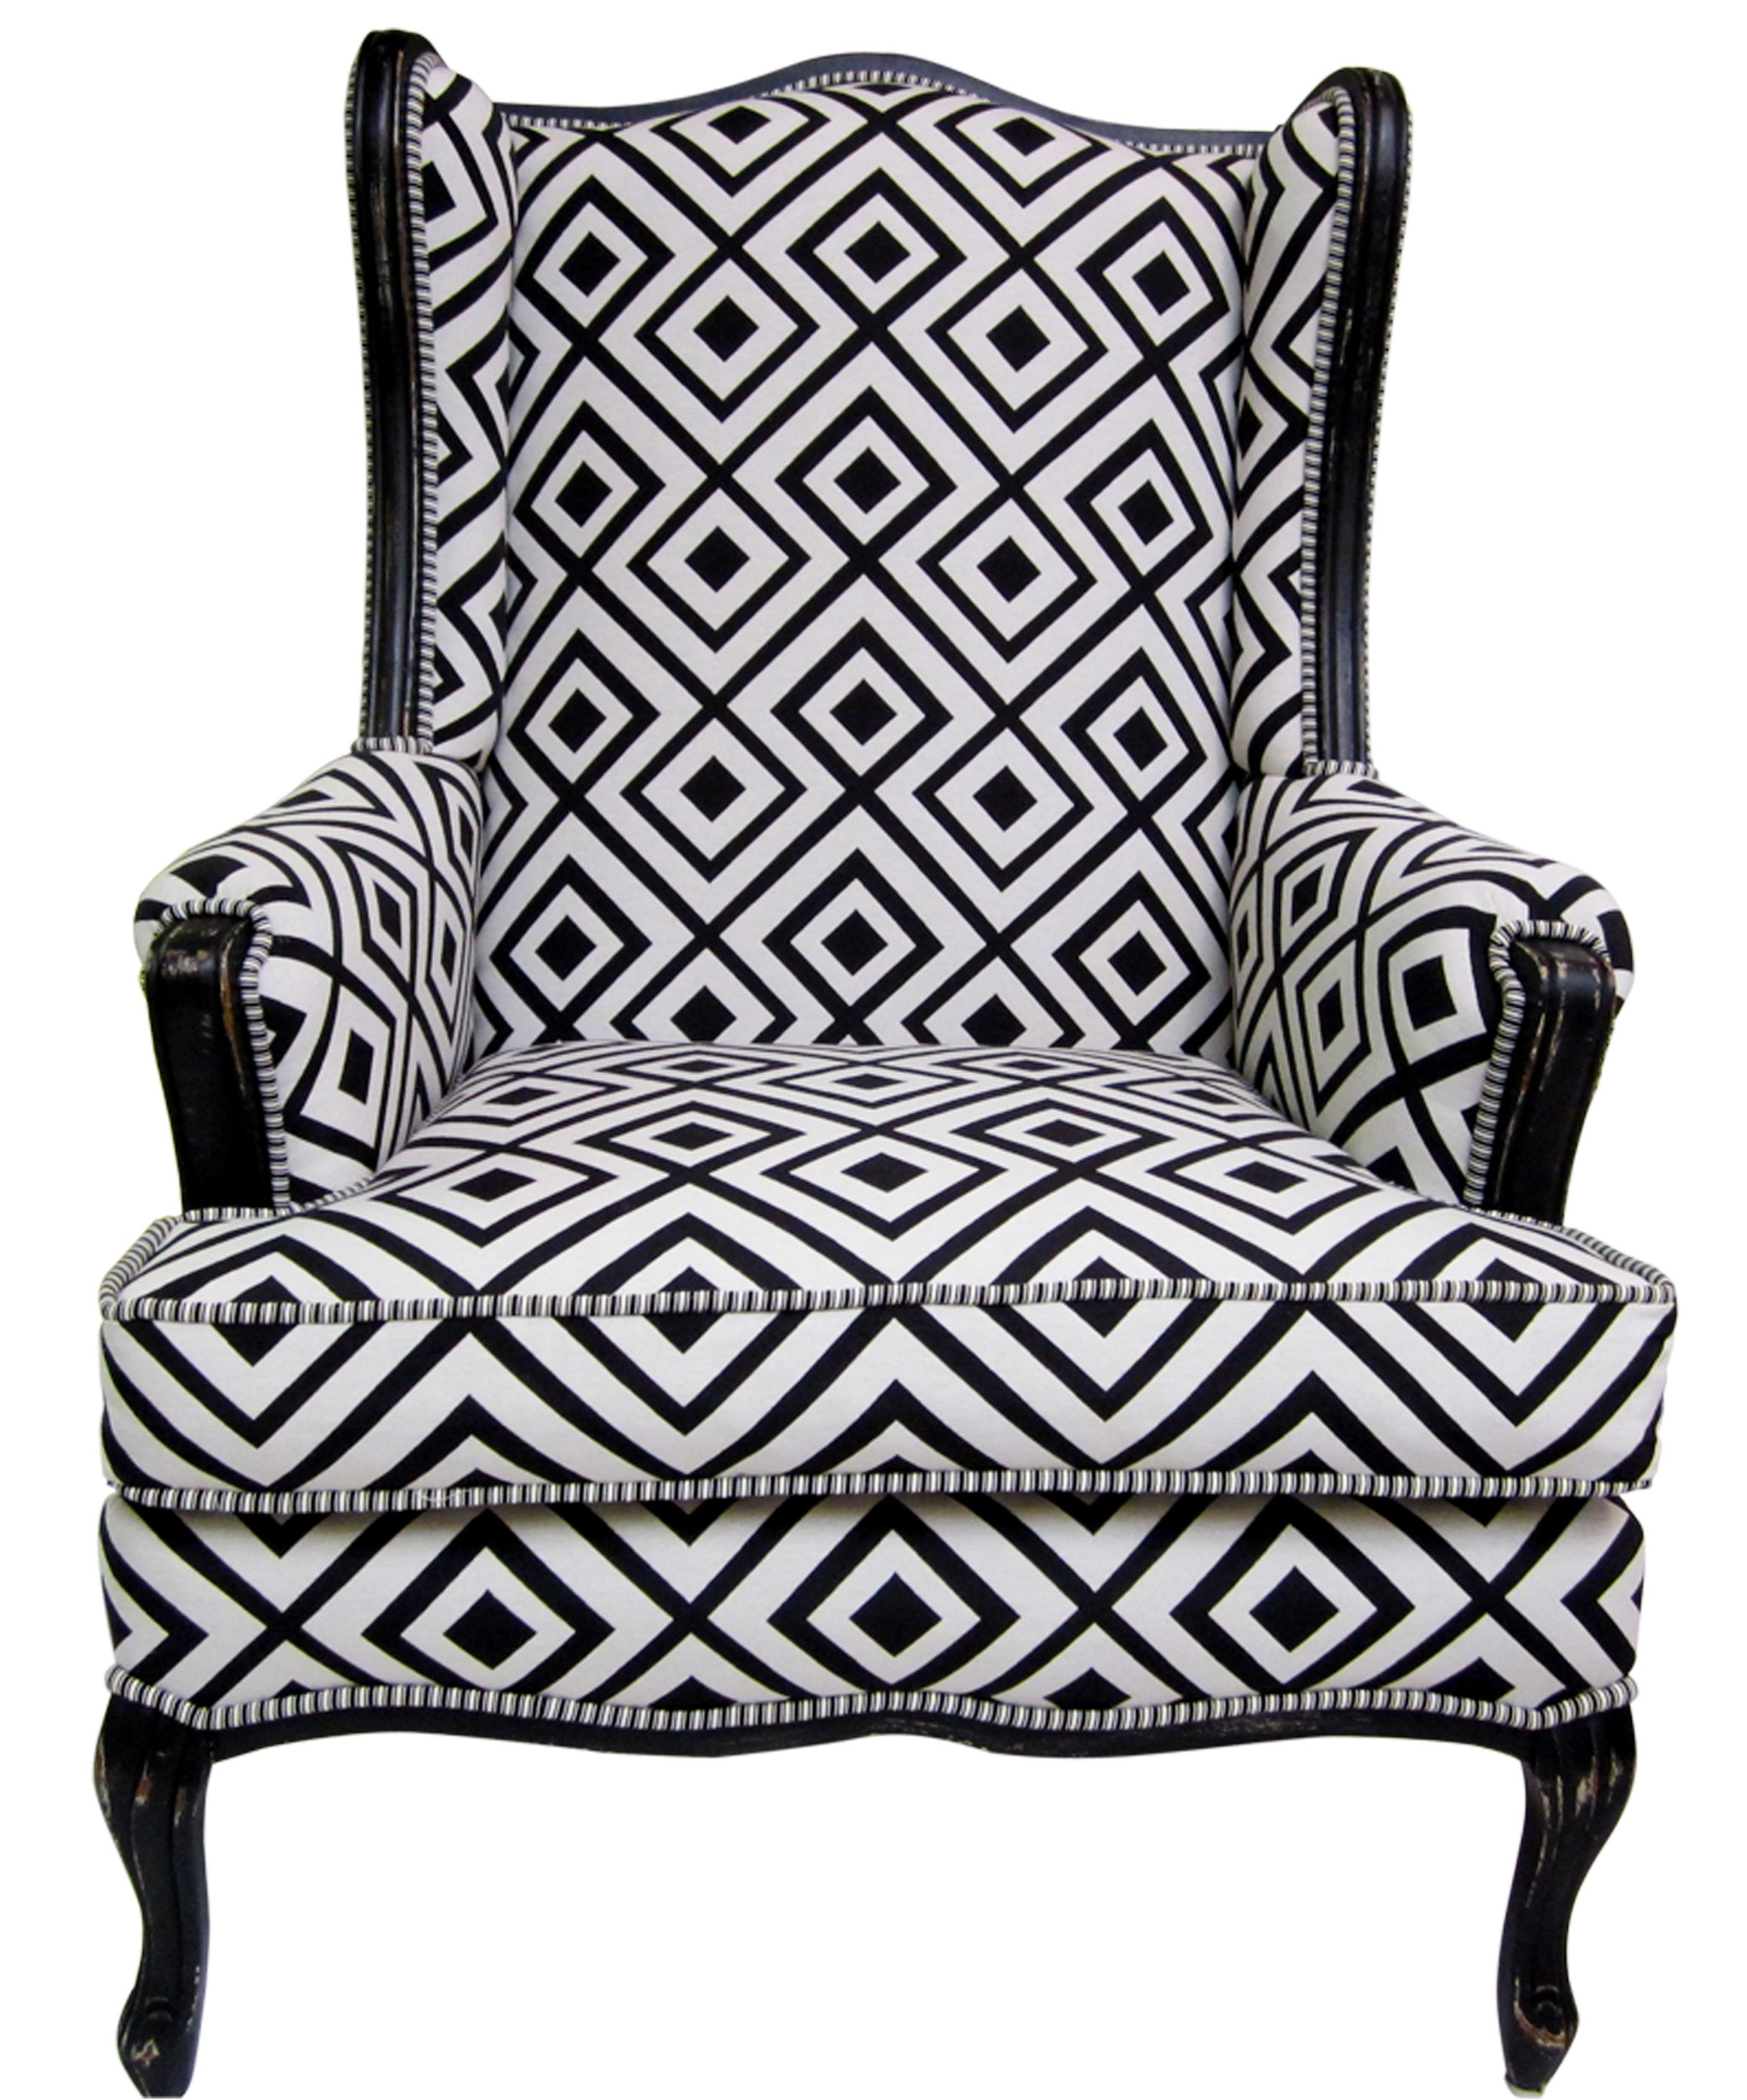 Black And White Wing Chairs | Pricing Black And White Geometric Wing Chair  Contemporary Wing Chair